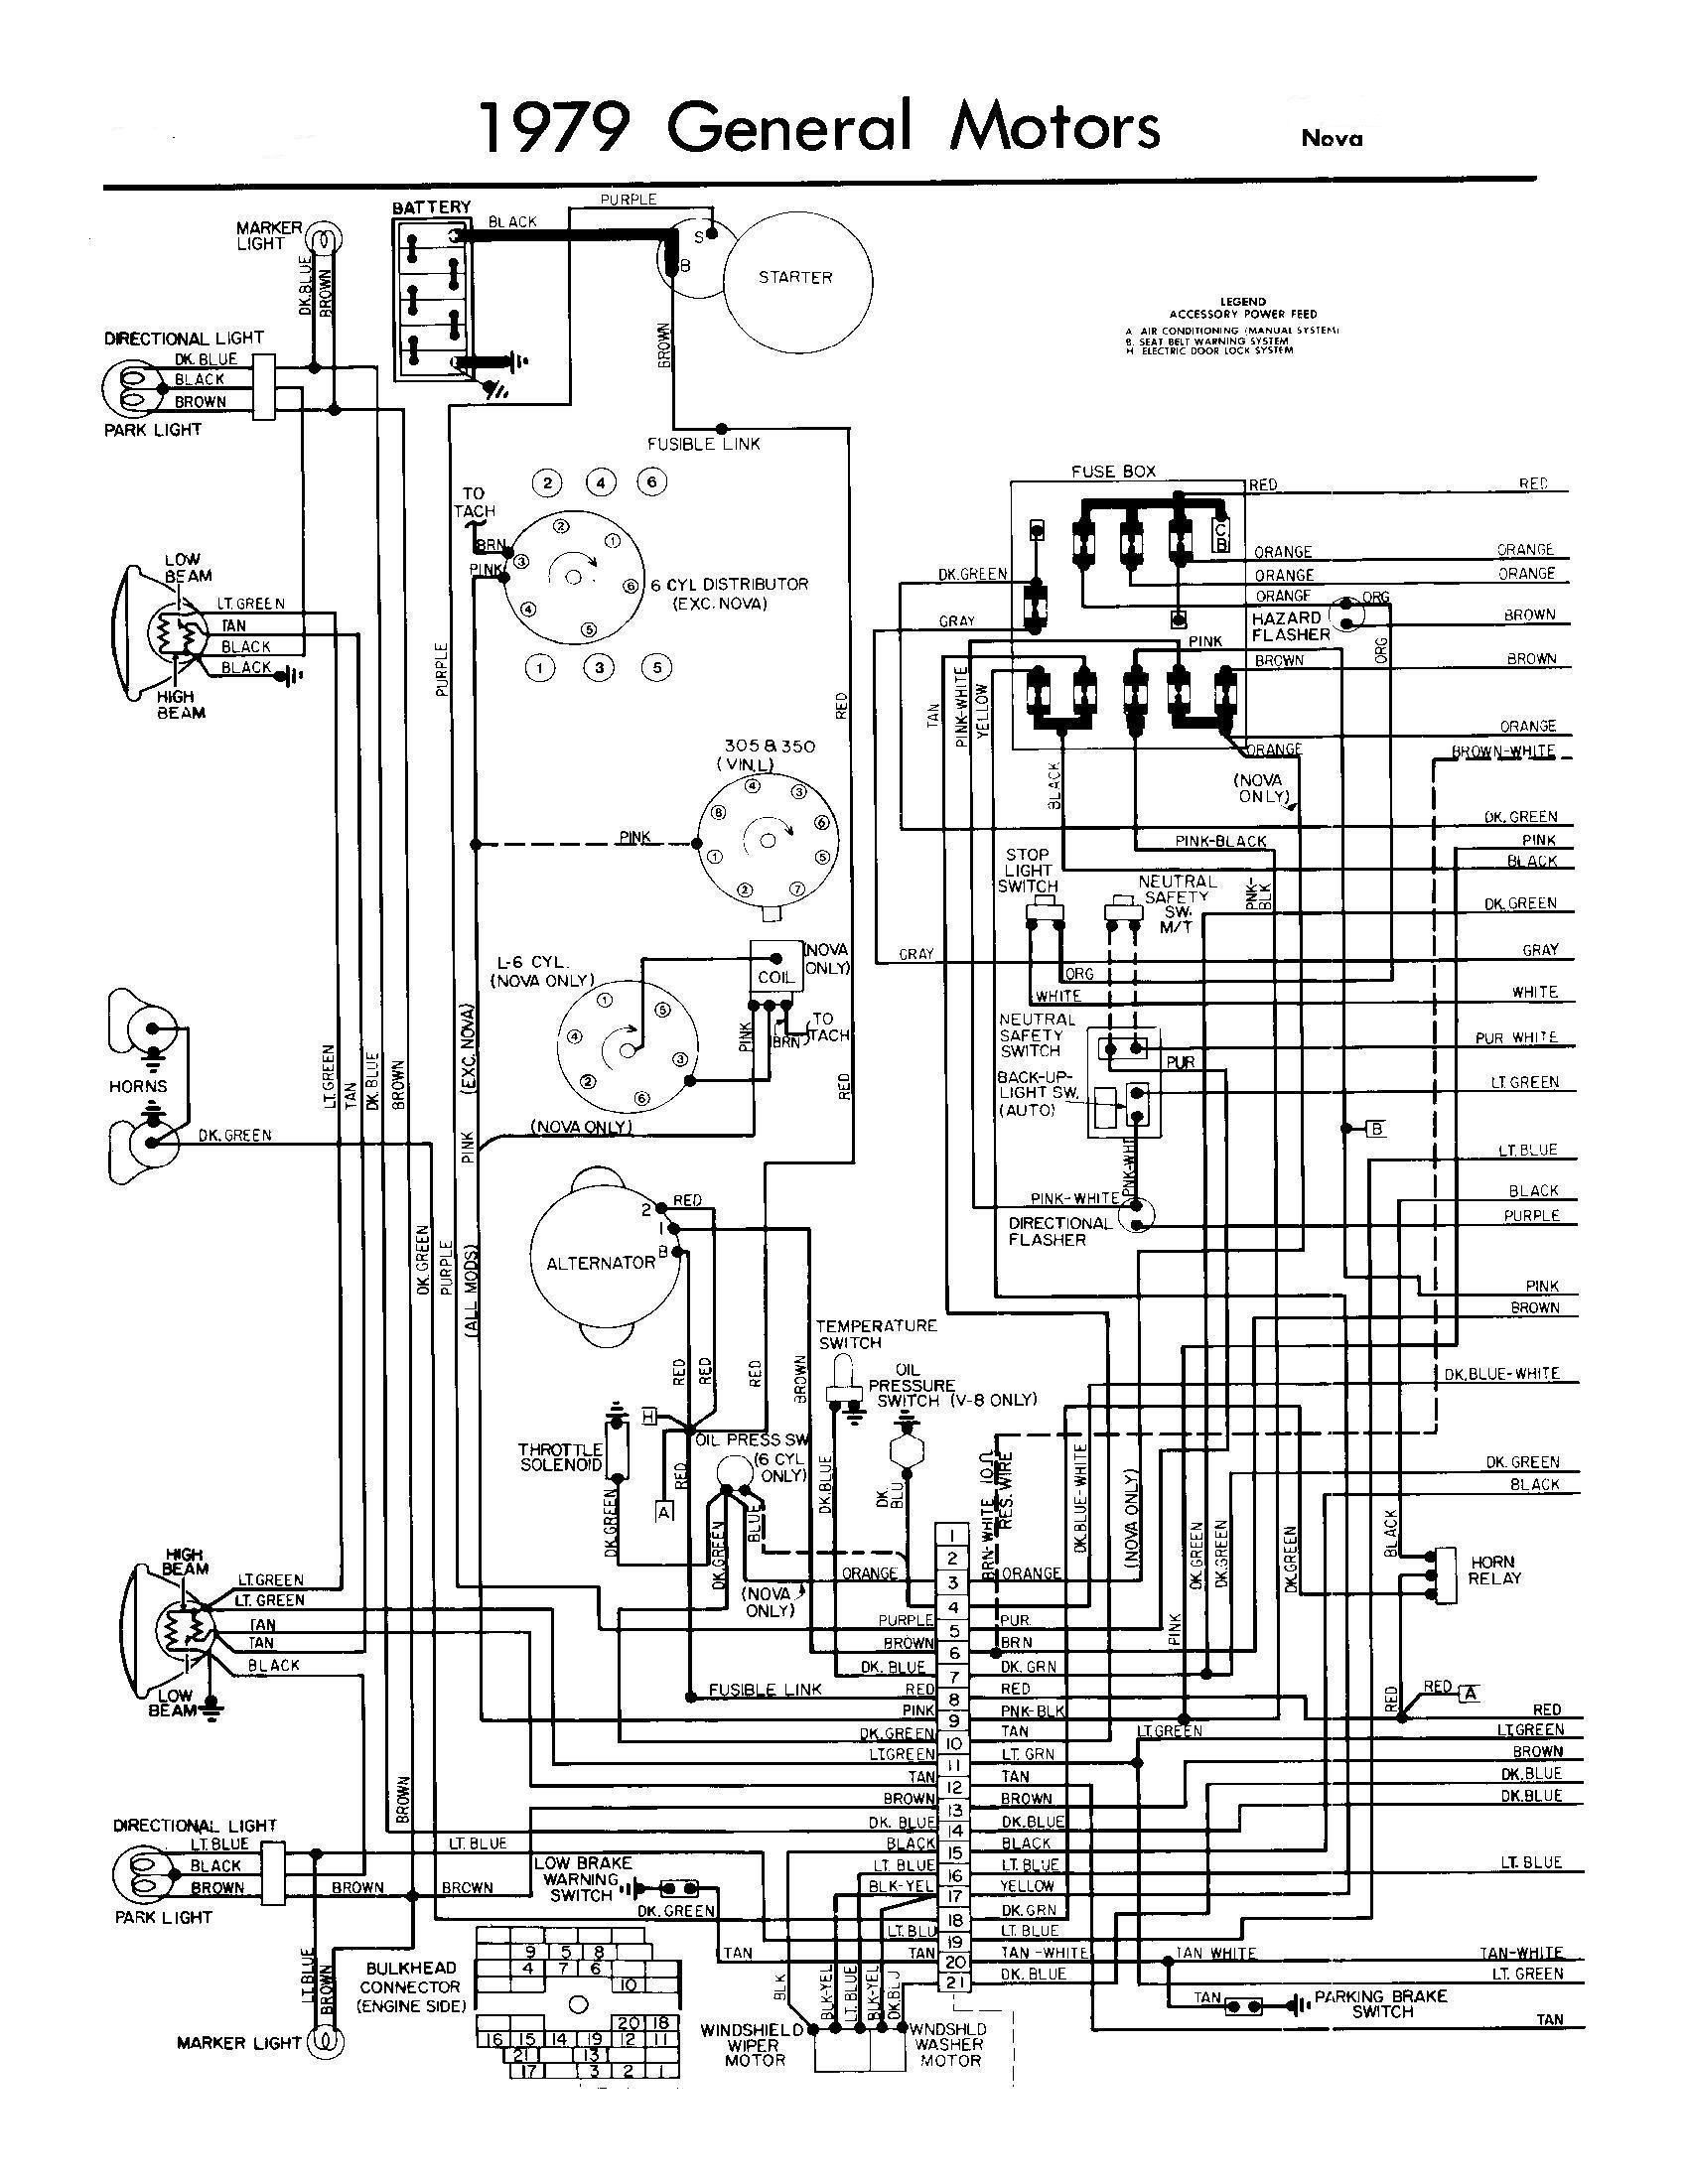 Chevy Truck Fuse Box Diagram Truck Wiring Diagram Moreover 1981 Chevy Truck Fuse Box Wiring Of Chevy Truck Fuse Box Diagram